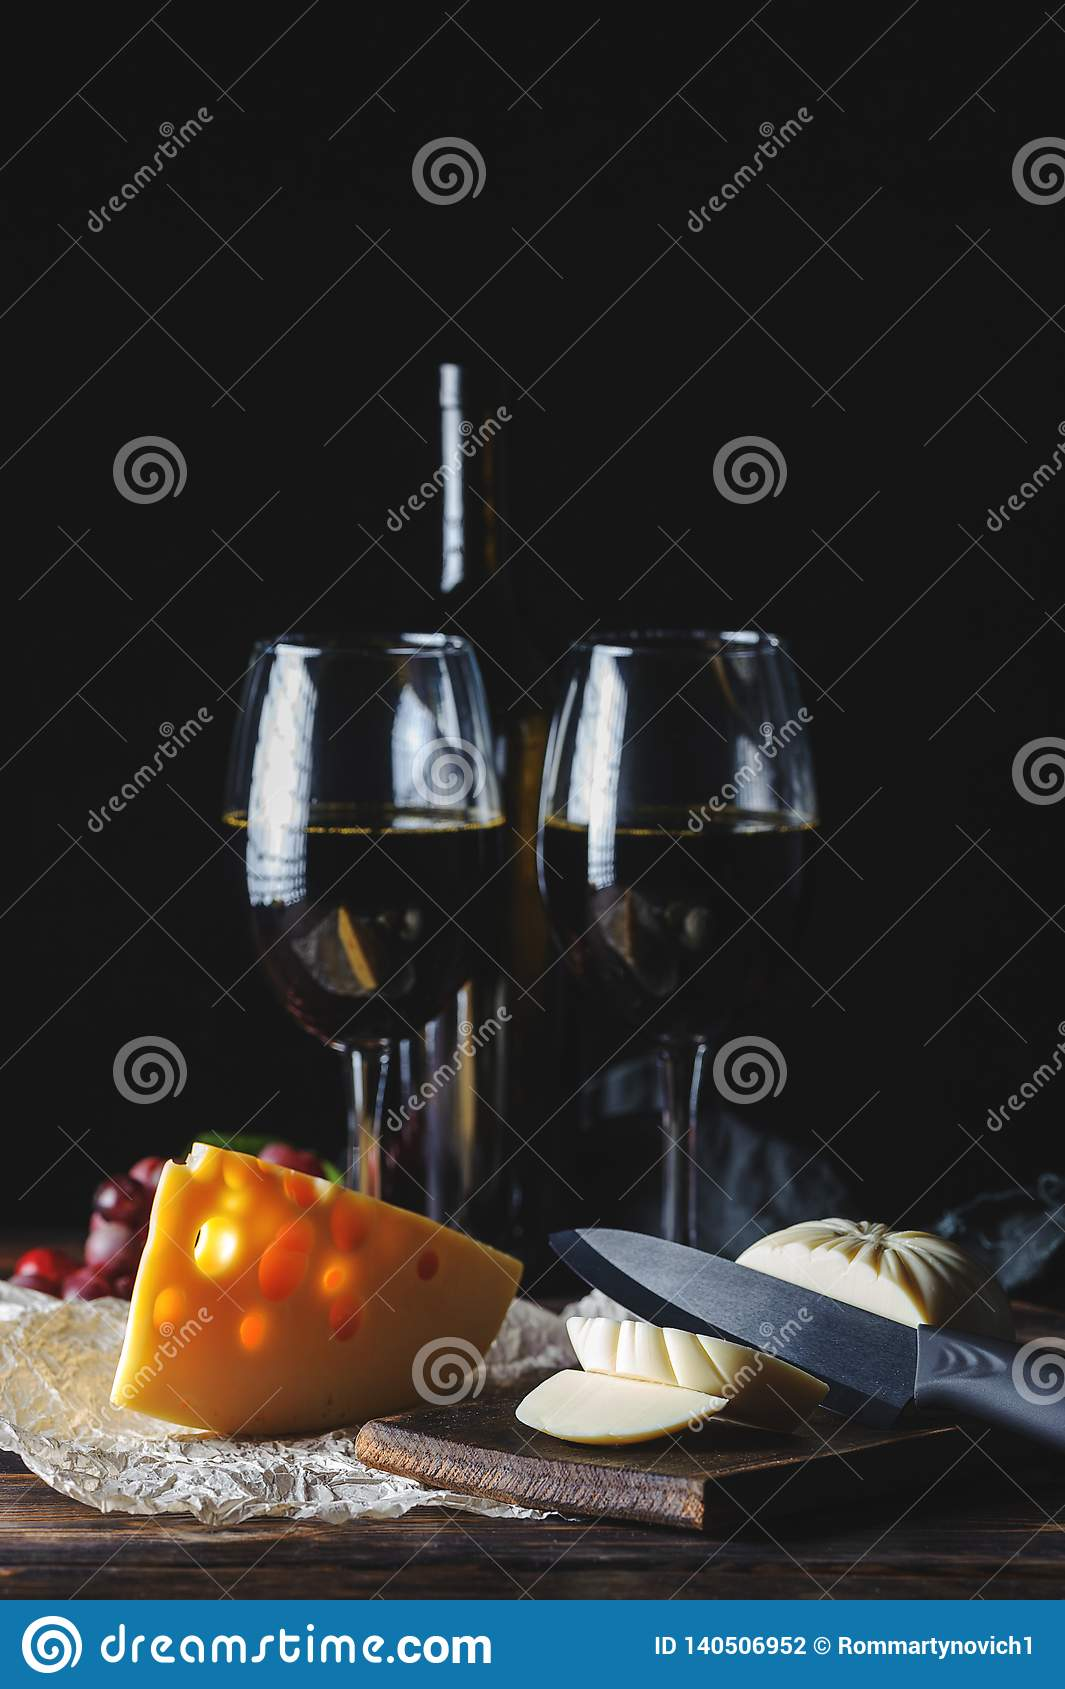 Cheese wine and a corkscrew on a wooden table